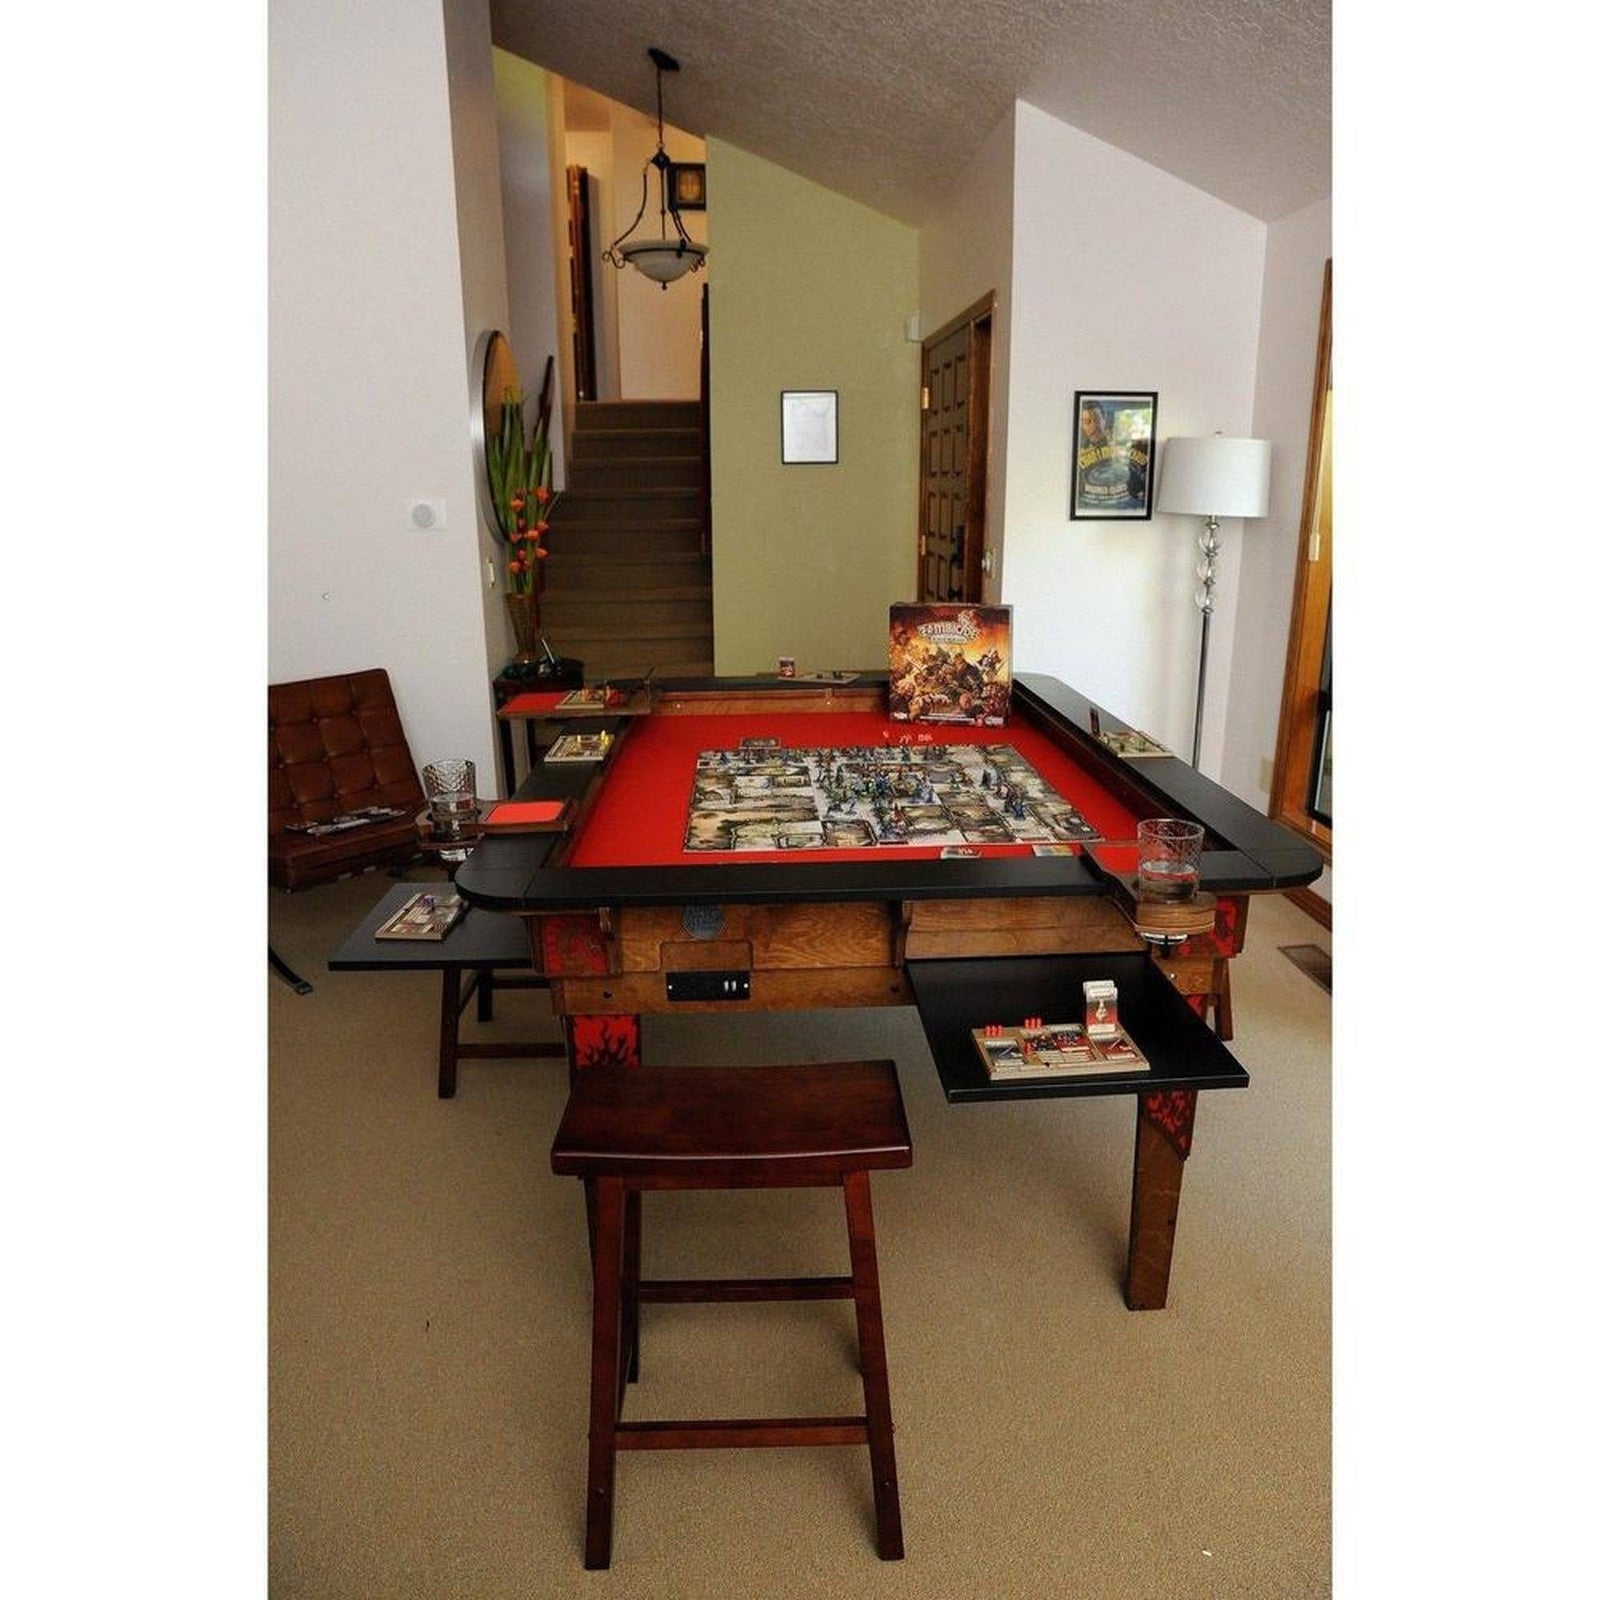 Table of Ultimate Gaming 3.5 ELITE Series - Standard Table Height - Table of Ultimate Gaming